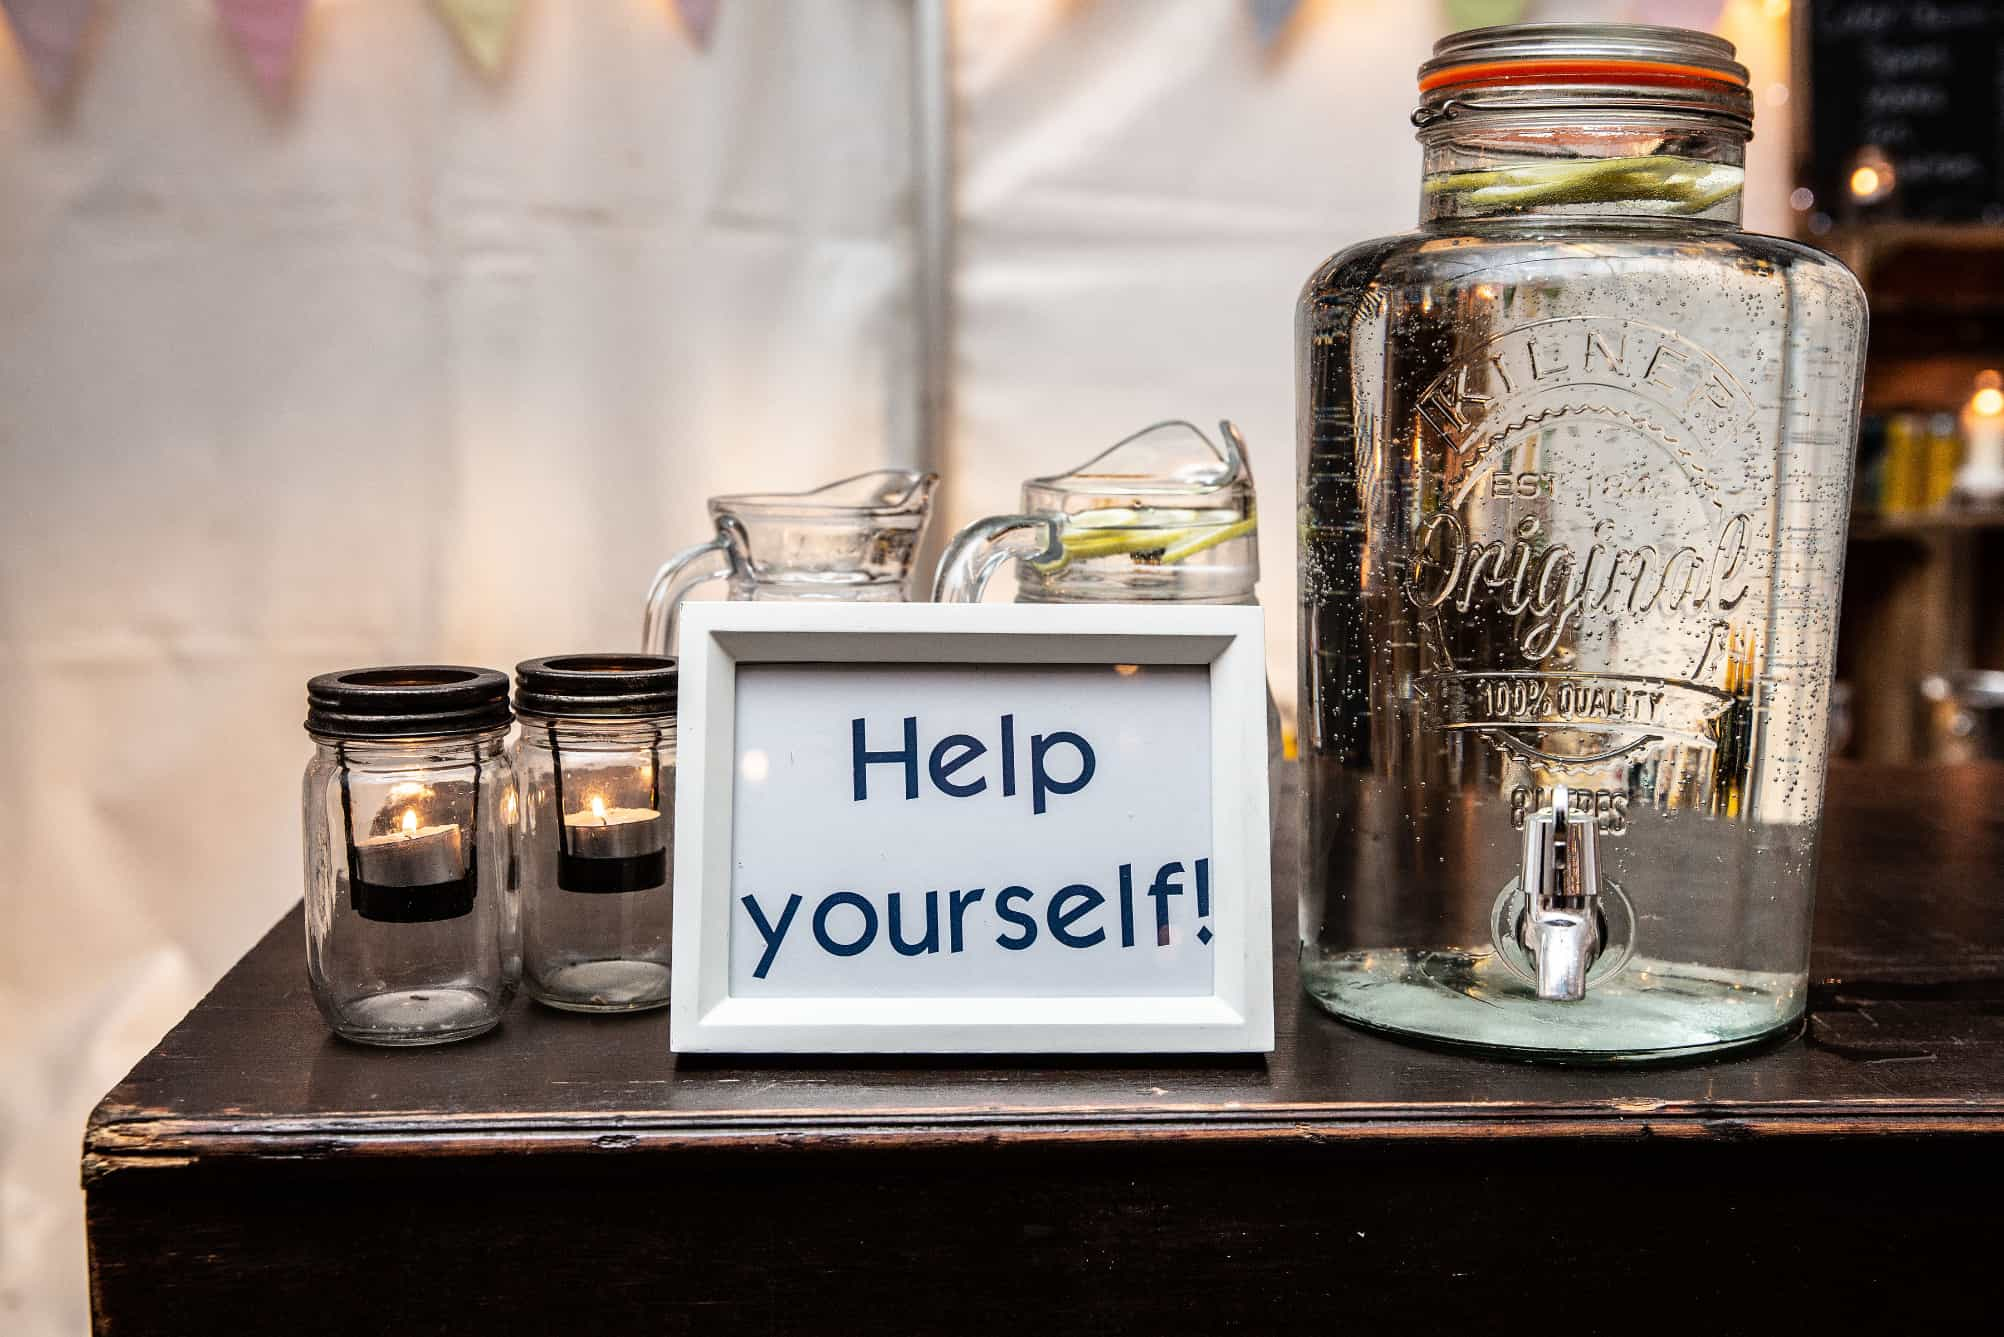 Kilner jar filled with water at an event in a marquee